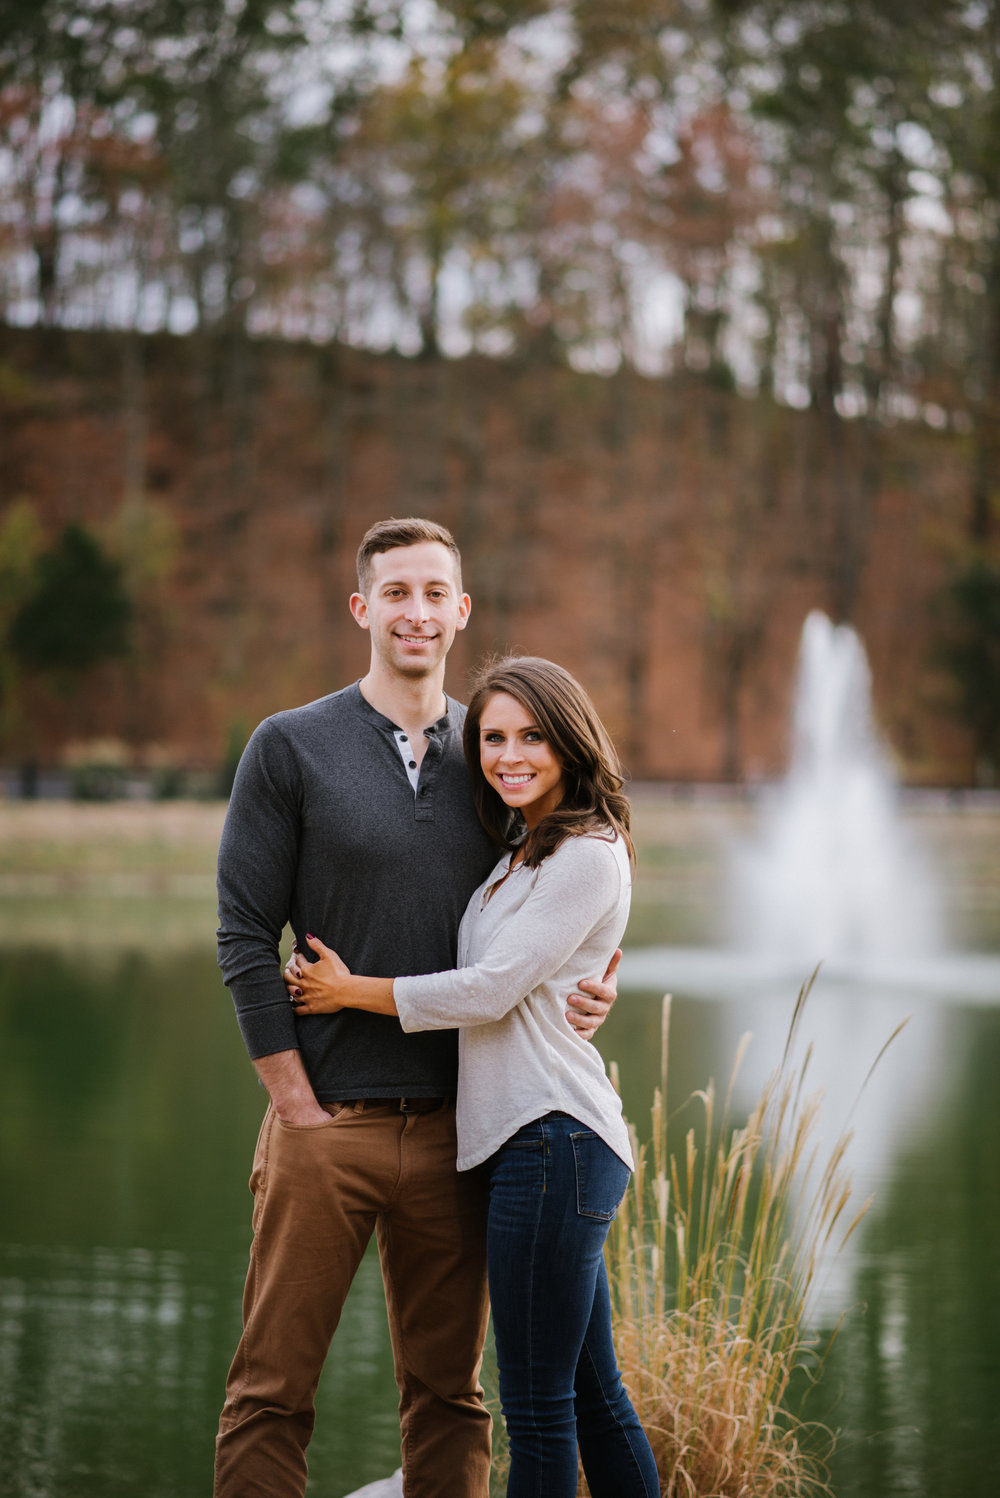 Engagement Session at Graystone Quarry